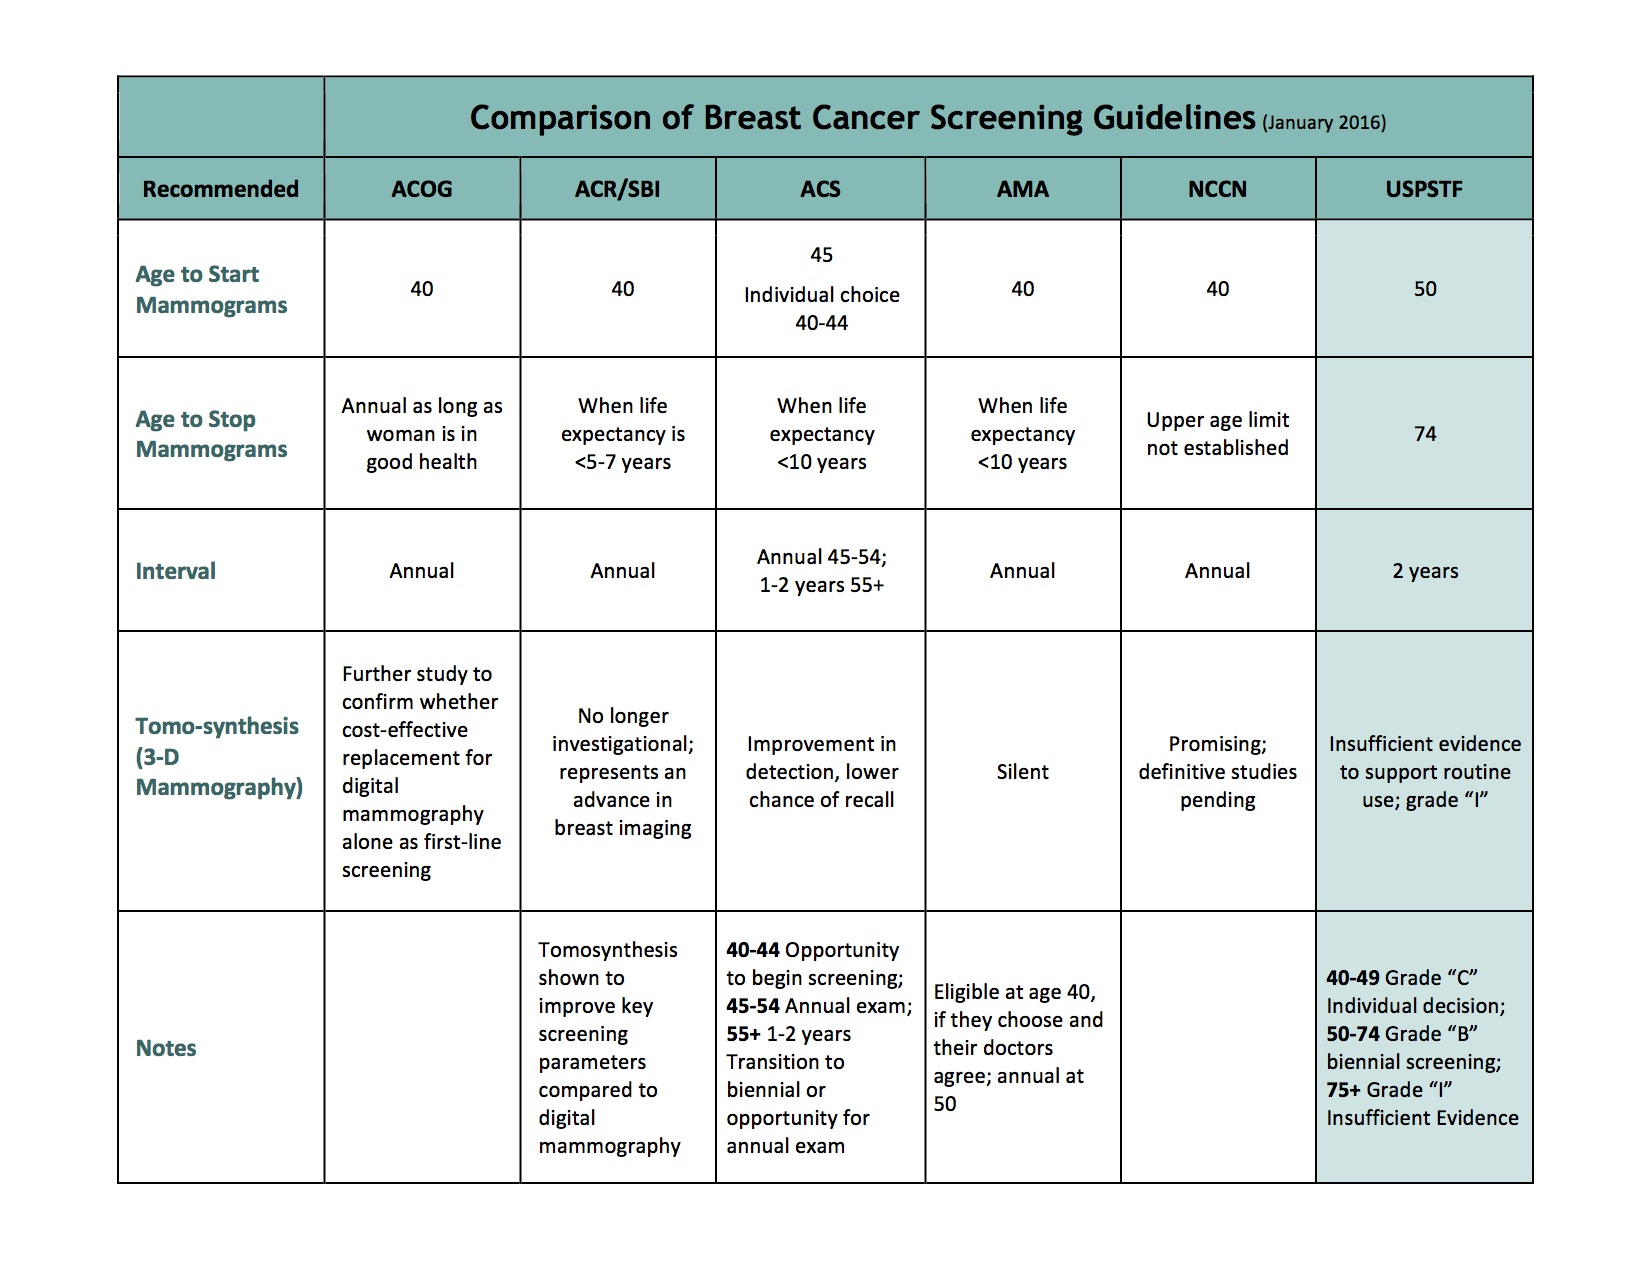 Breast Cancer Screening Guidelines - January 2016 #PrimaryCare #BreastCancer #Mammogram #Screening #Society #Guidelines #Intervals #Ages #USPSTF #ComparisonTable